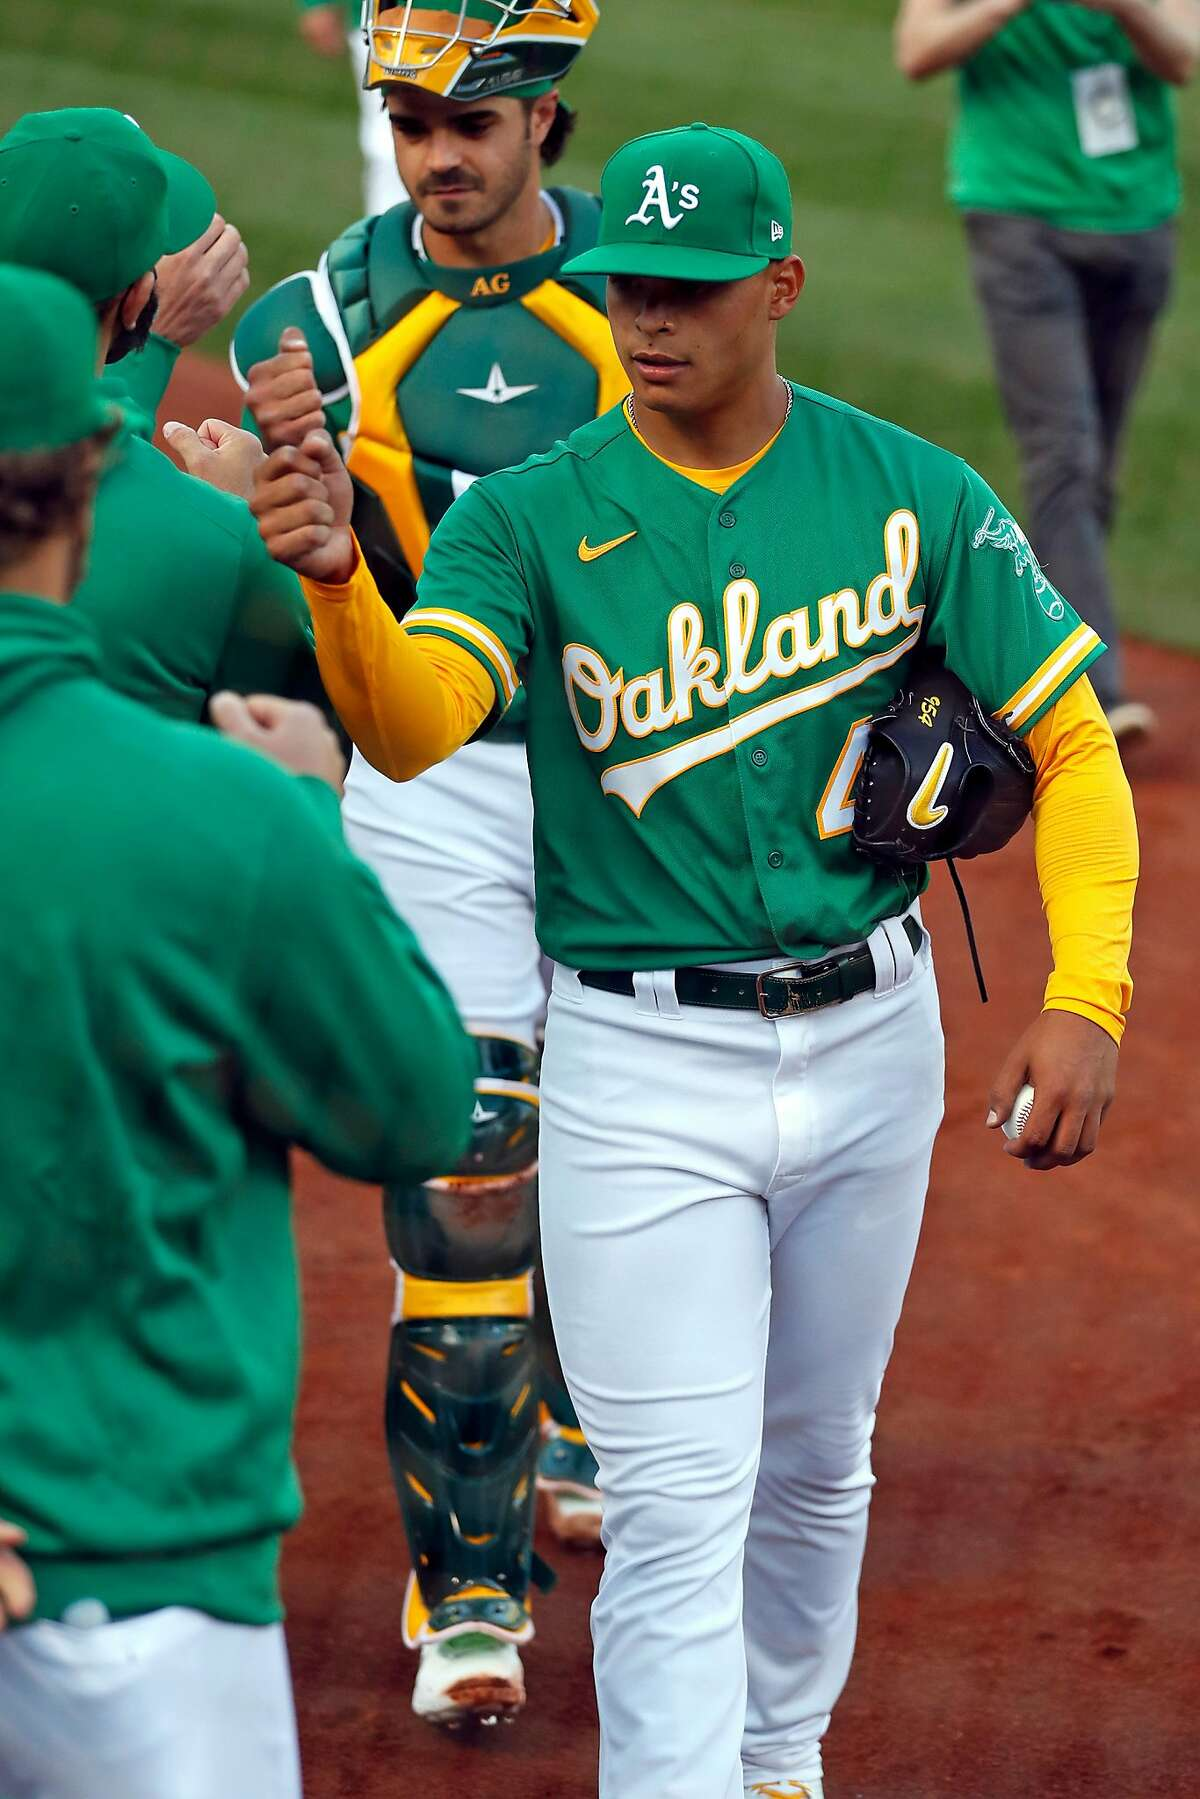 Oakland Athletics' Jesus Luzardo fist bumps teammates before facing Houston Astros during MLB game at Oakland Coliseum in Oakland, Calif., on Friday, April 2, 2021.